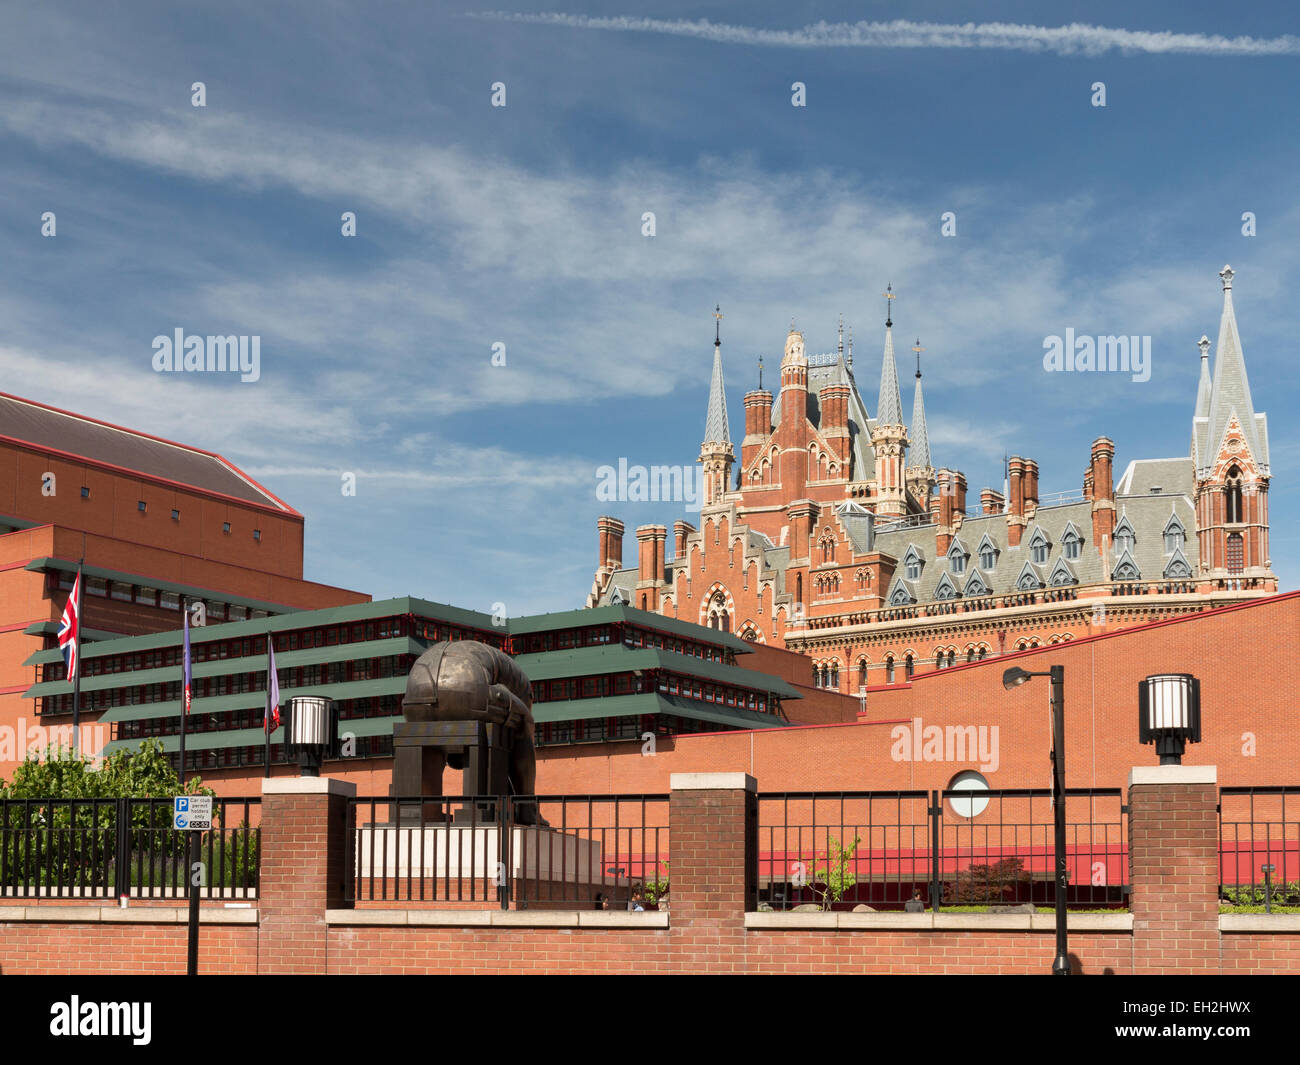 St Pancras Station over British Library - Stock Image